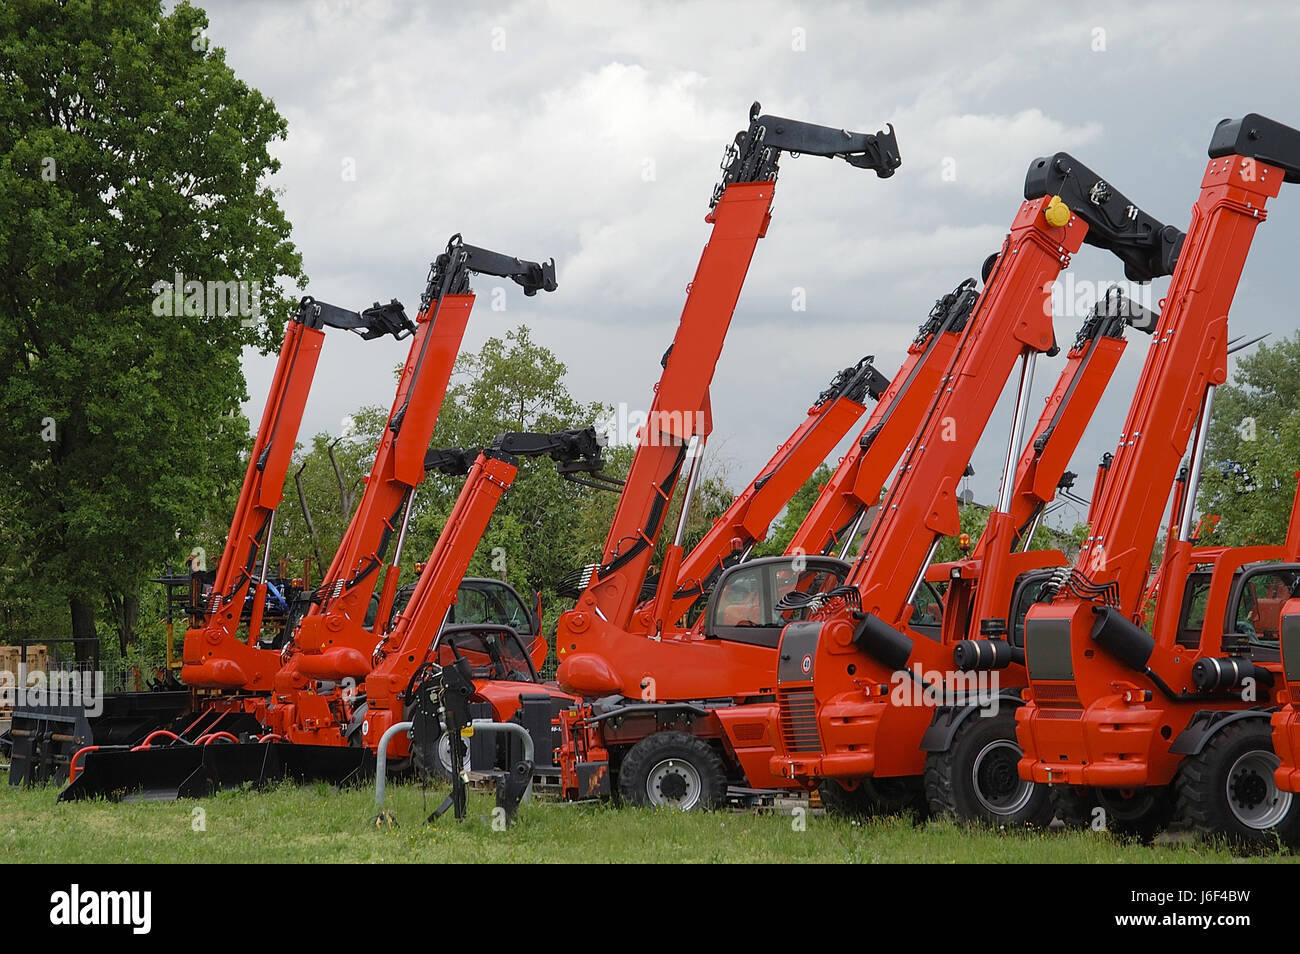 cranes stacker machinery modern modernity industry engineering cranes machines - Stock Image